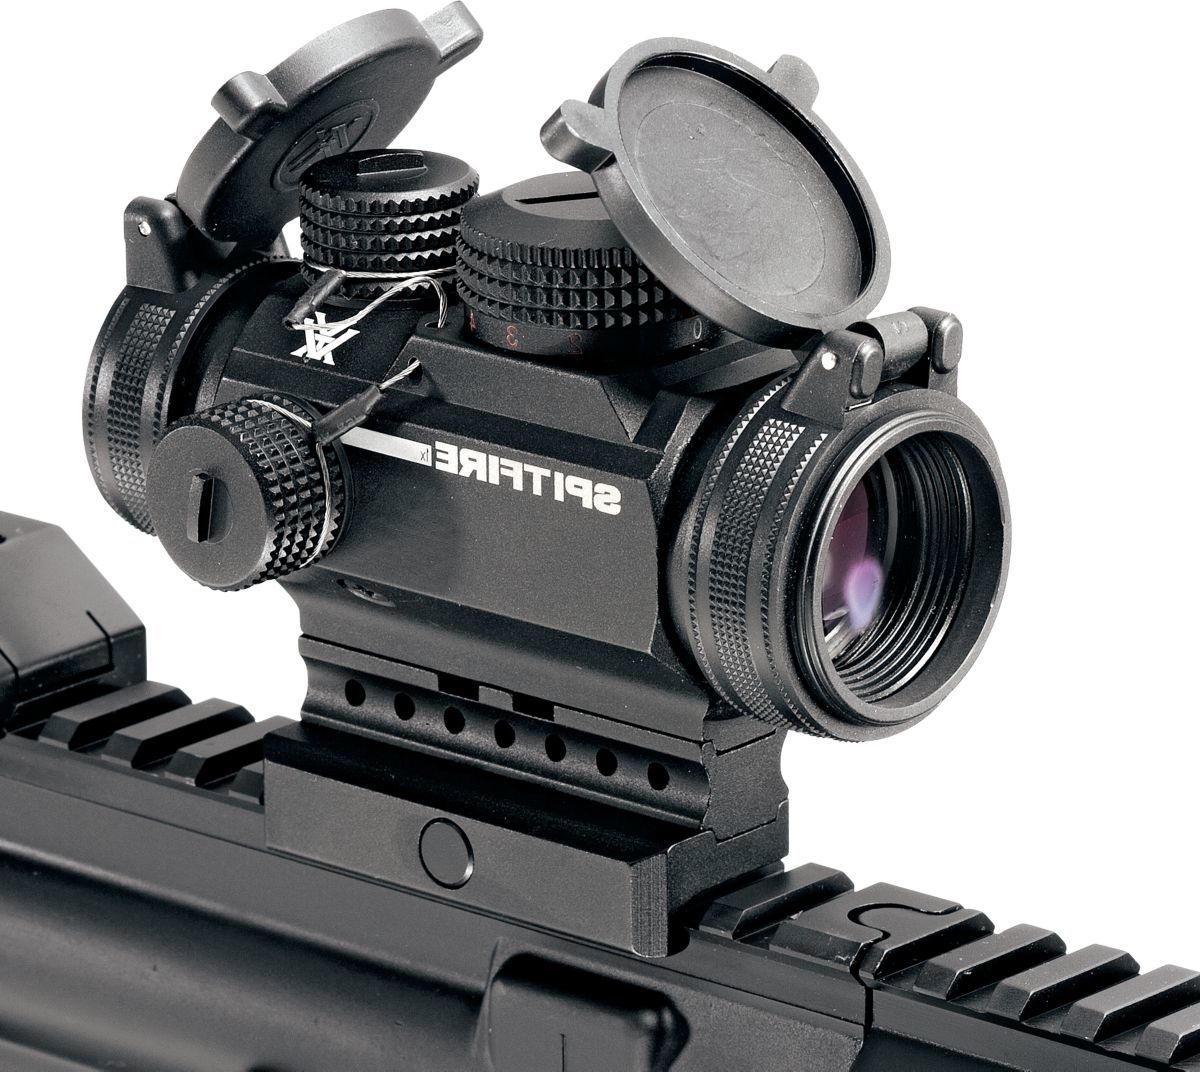 Vortex® Spitfire Prism Scope